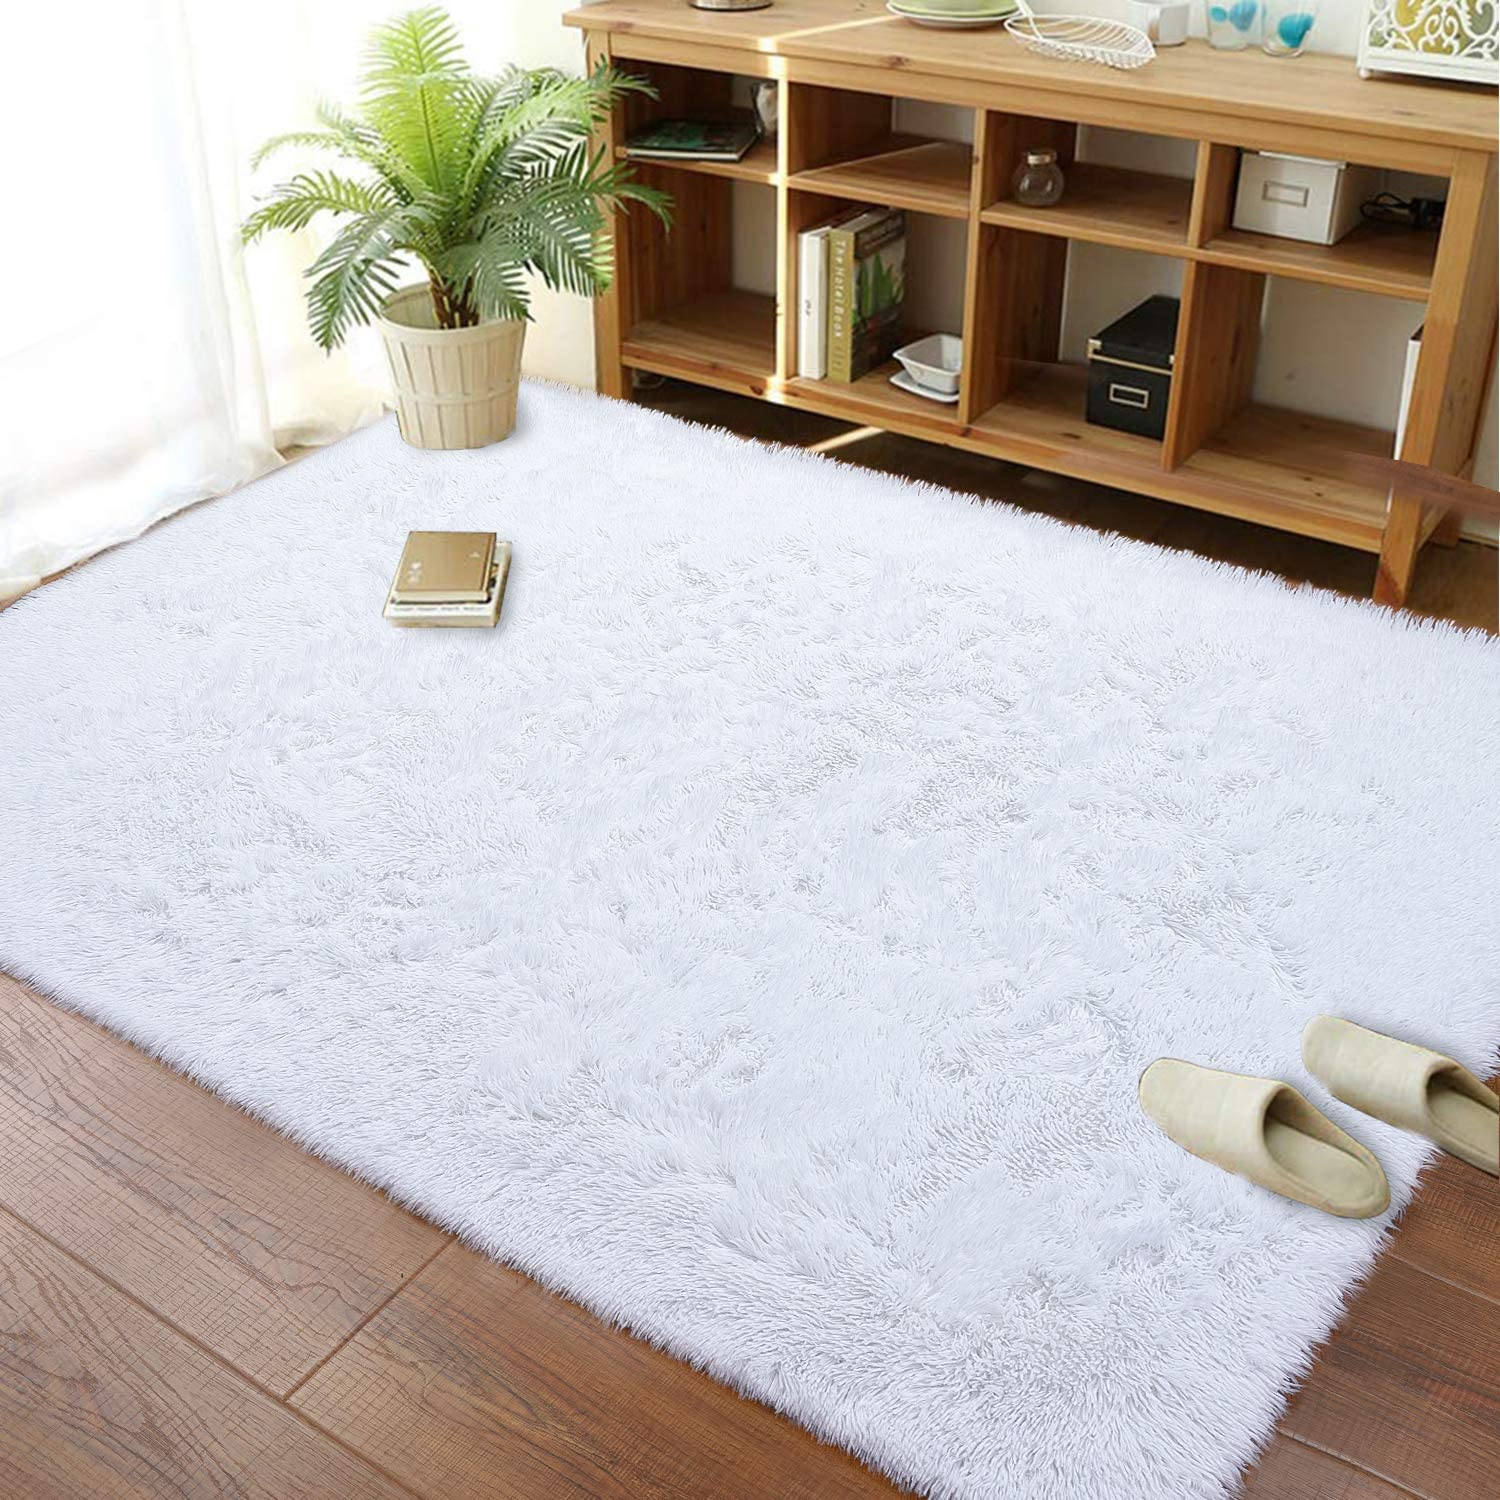 Soft Modern Shaggy Fur Area Rug for Bedroom Livingroom Decorative Floor Carpet, Non-Slip Large Plush Fluffy Comfy Warm Furry Fur Rugs for Boys Girls Nursery Accent Rugs 4x6 Feet, White